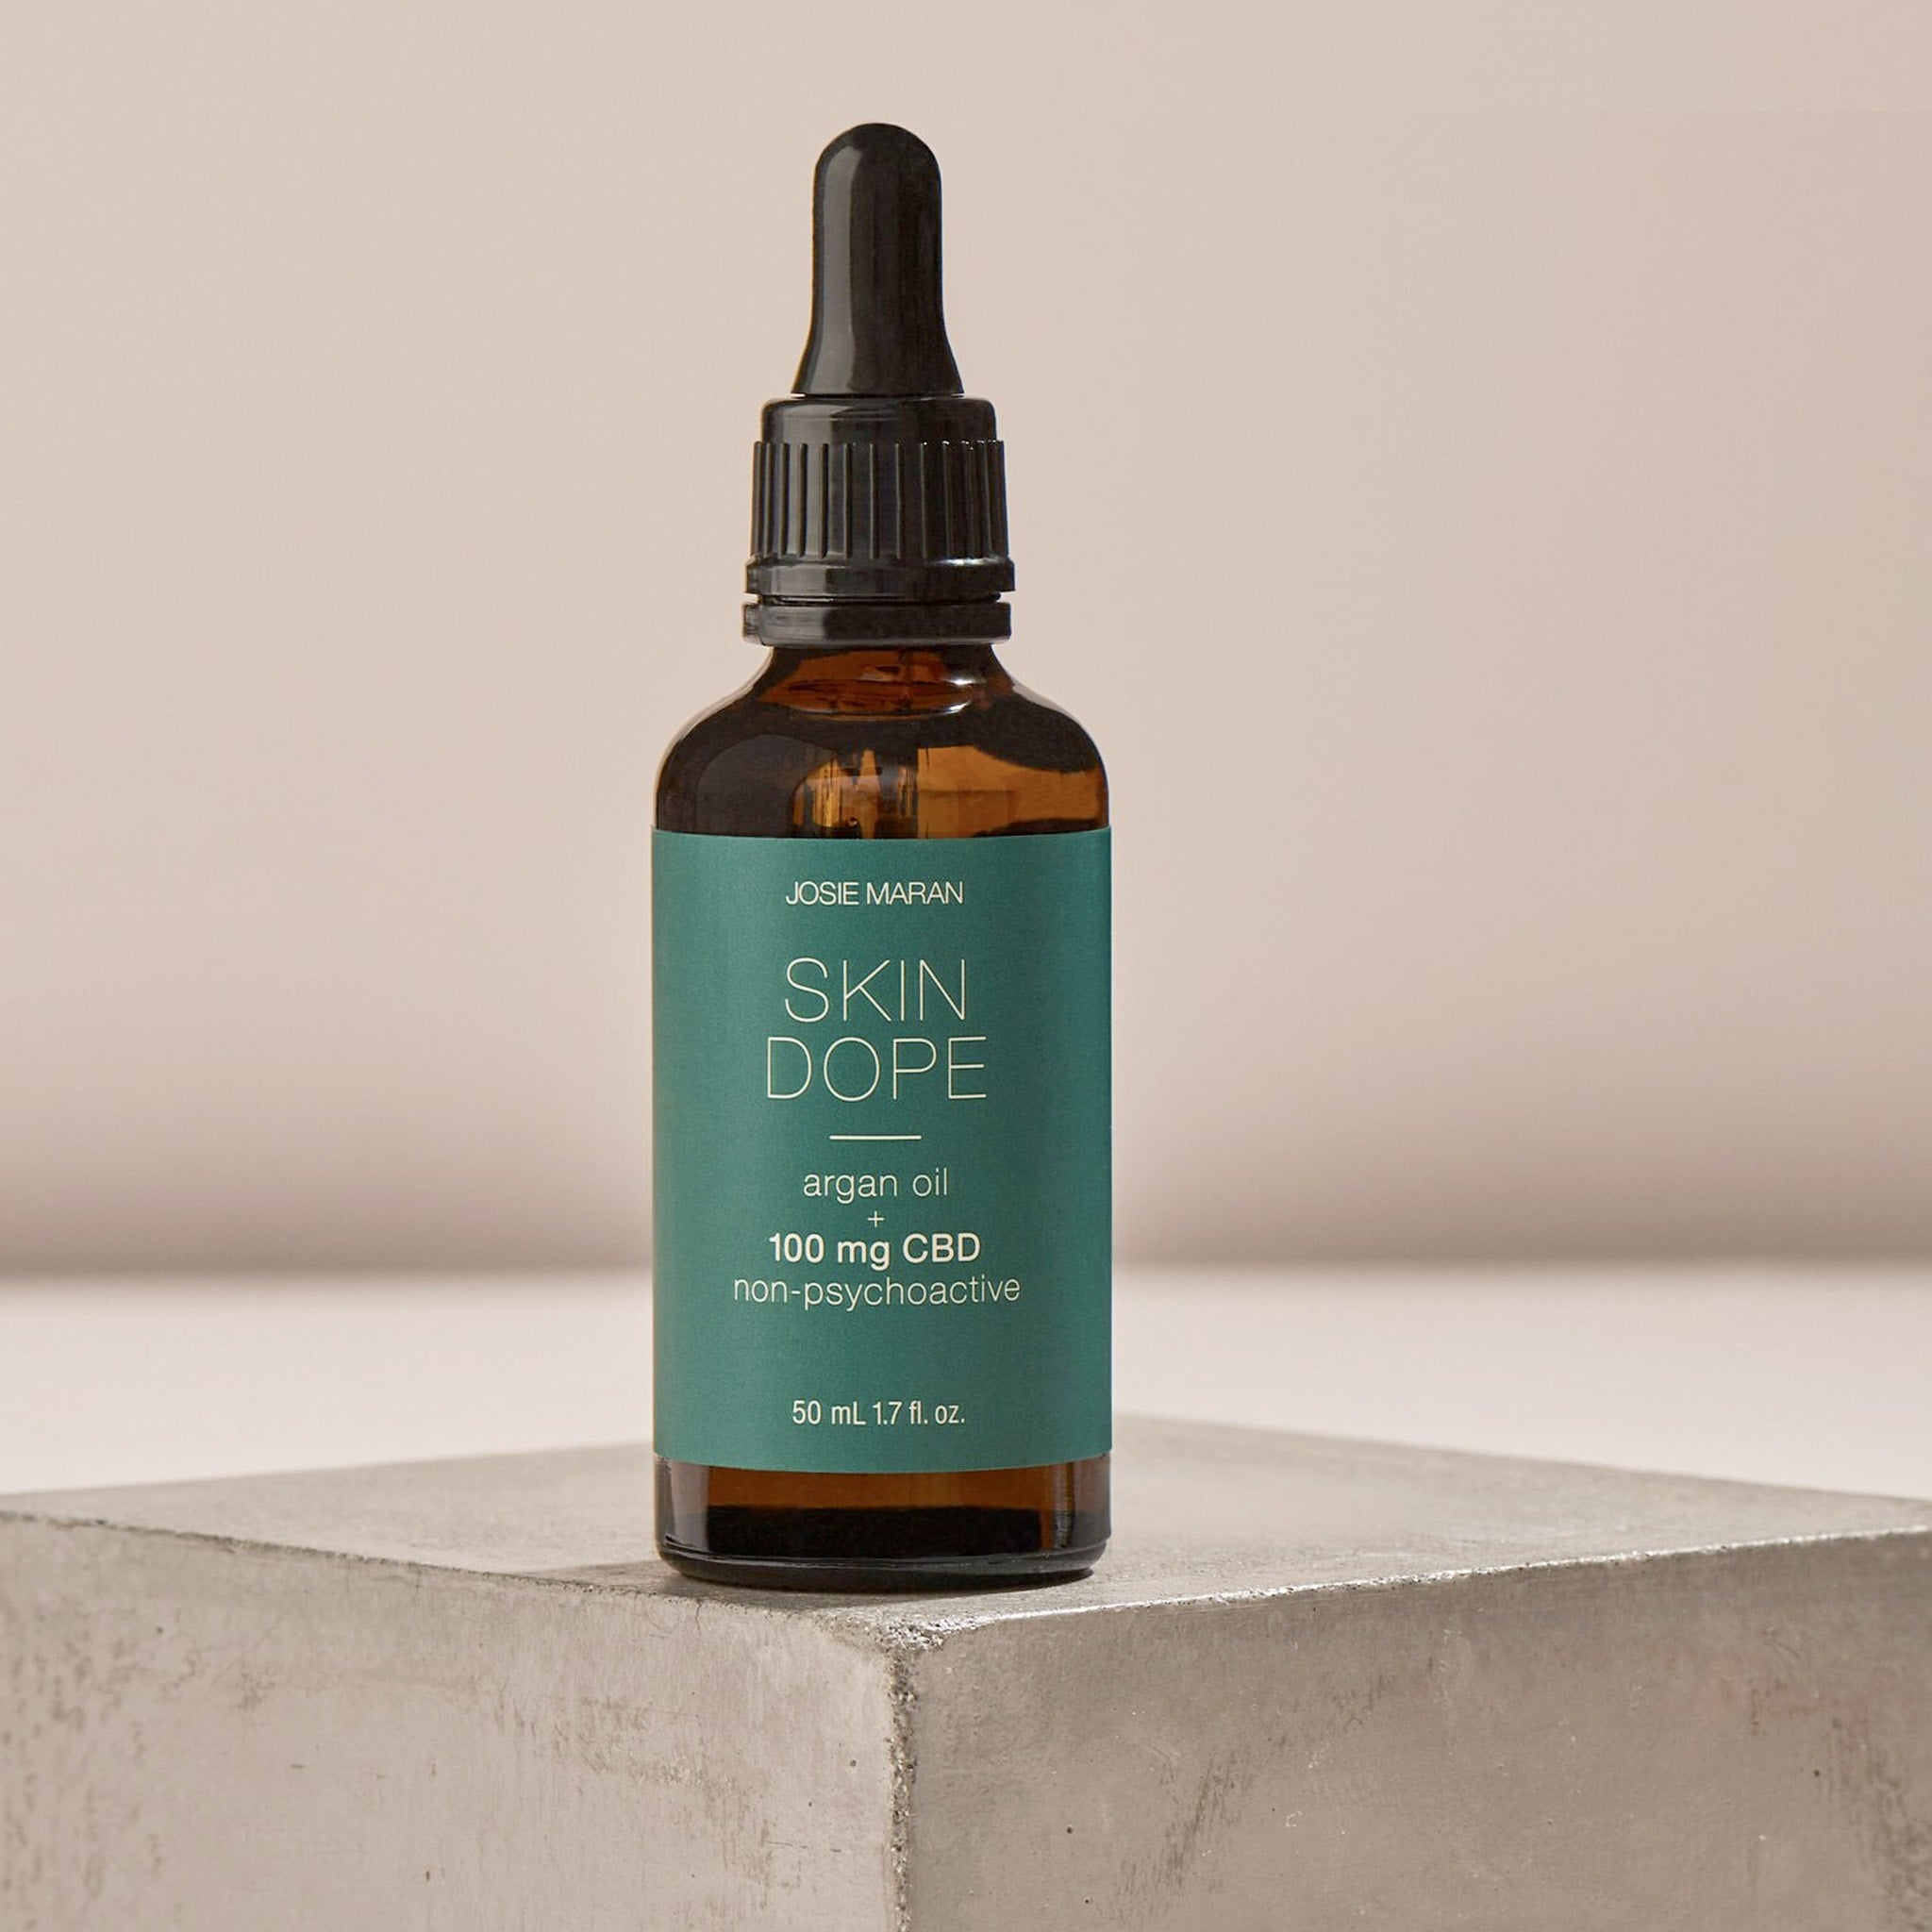 ARGAN OIL + 100 FULL-SPECTRUM OIL